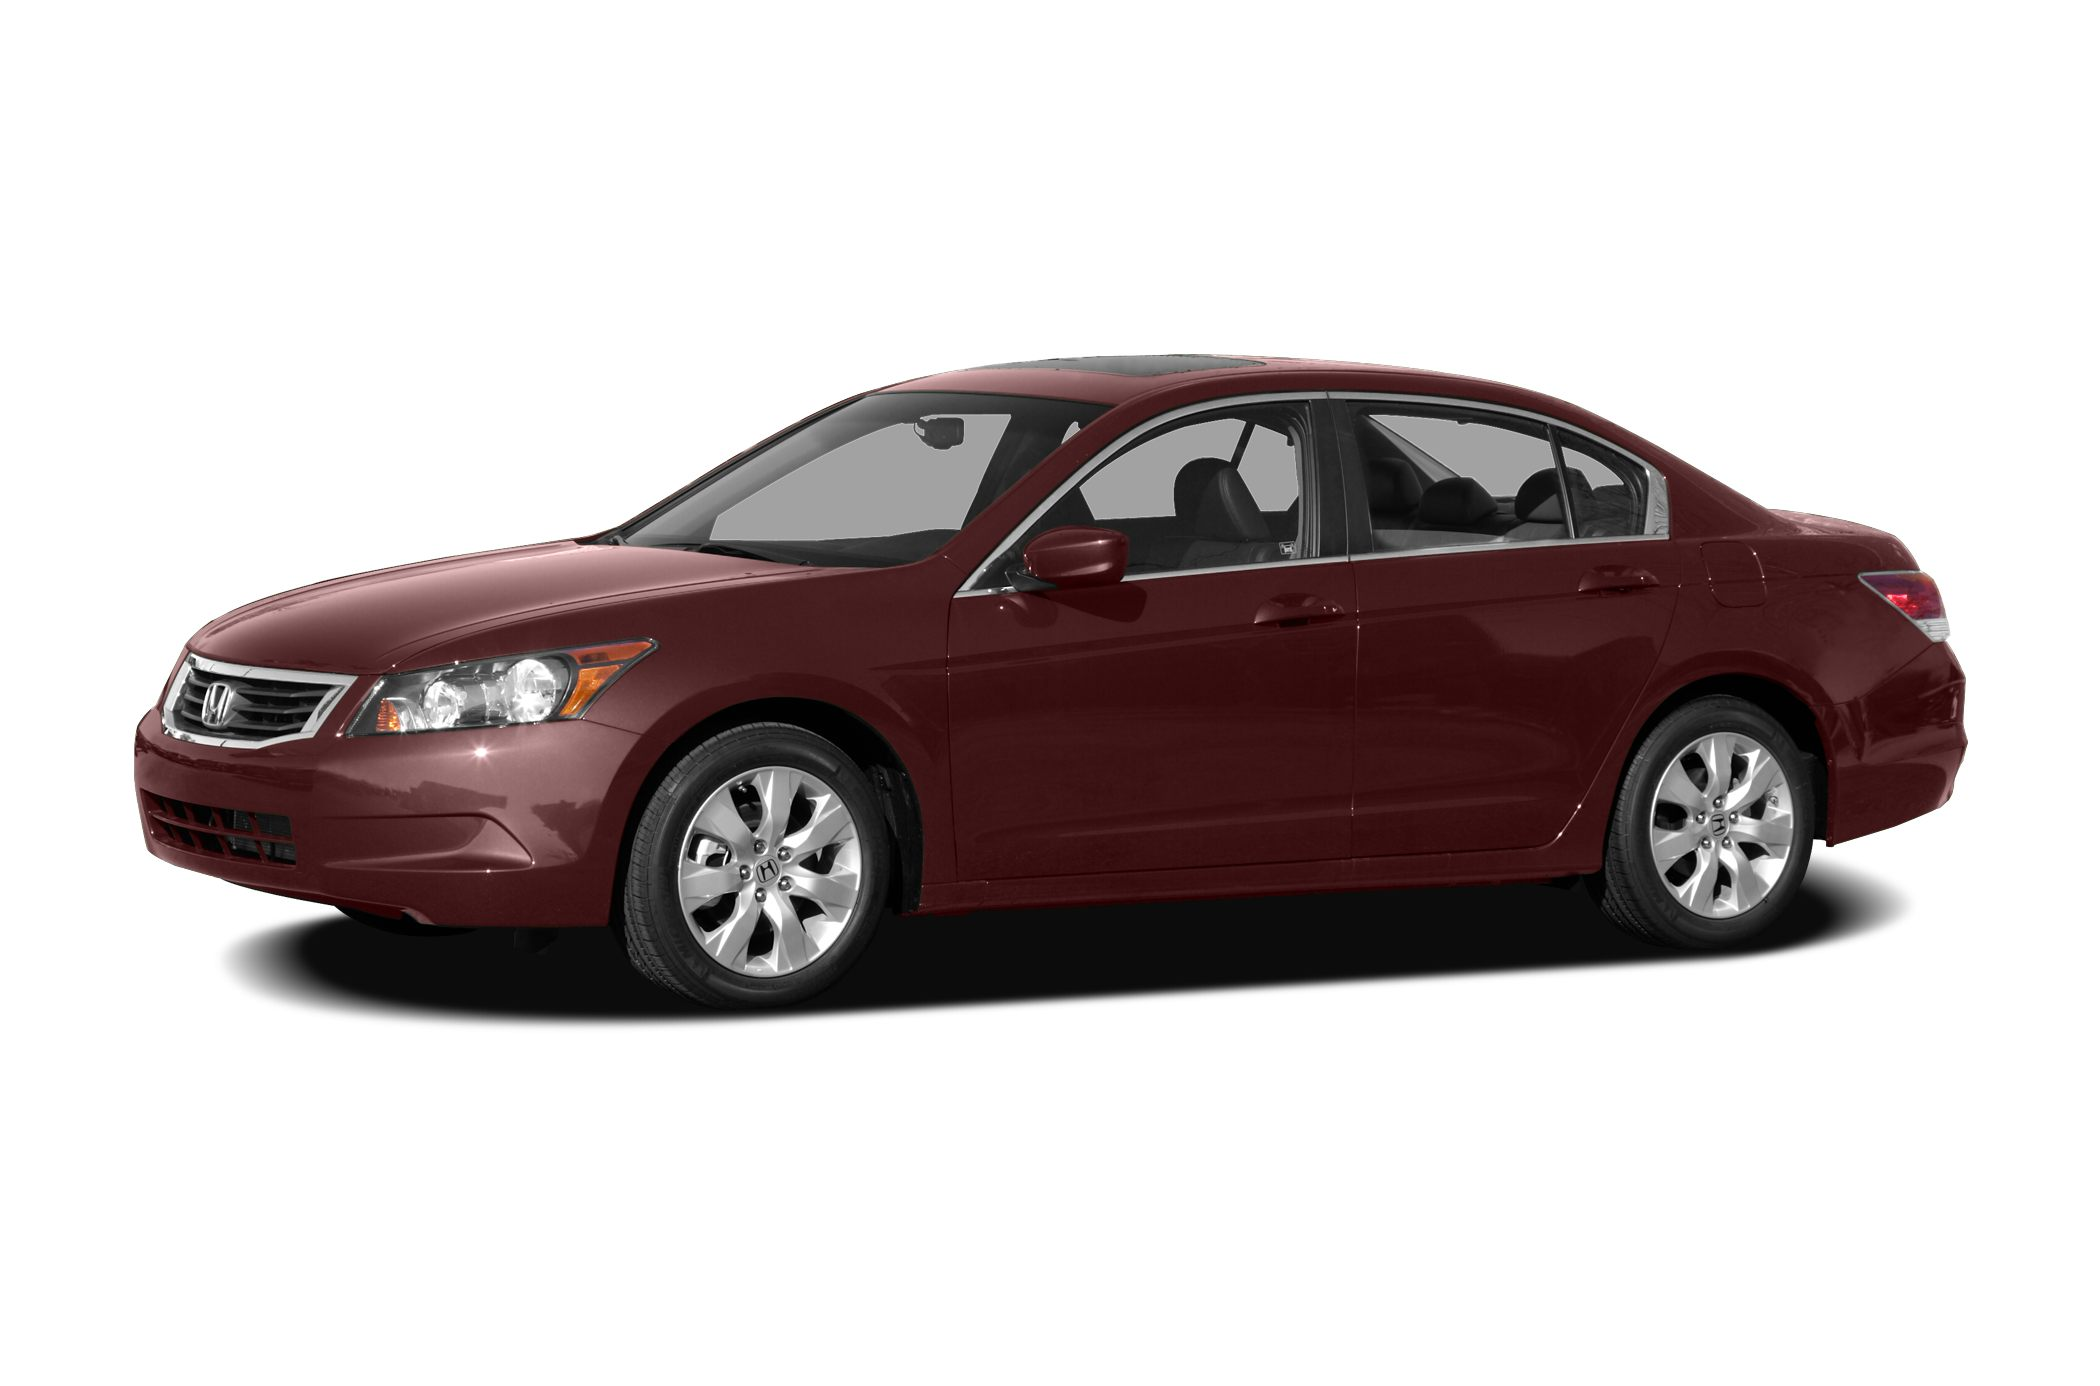 2008 Honda Accord EX-L Sedan for sale in Columbus for $0 with 109,575 miles